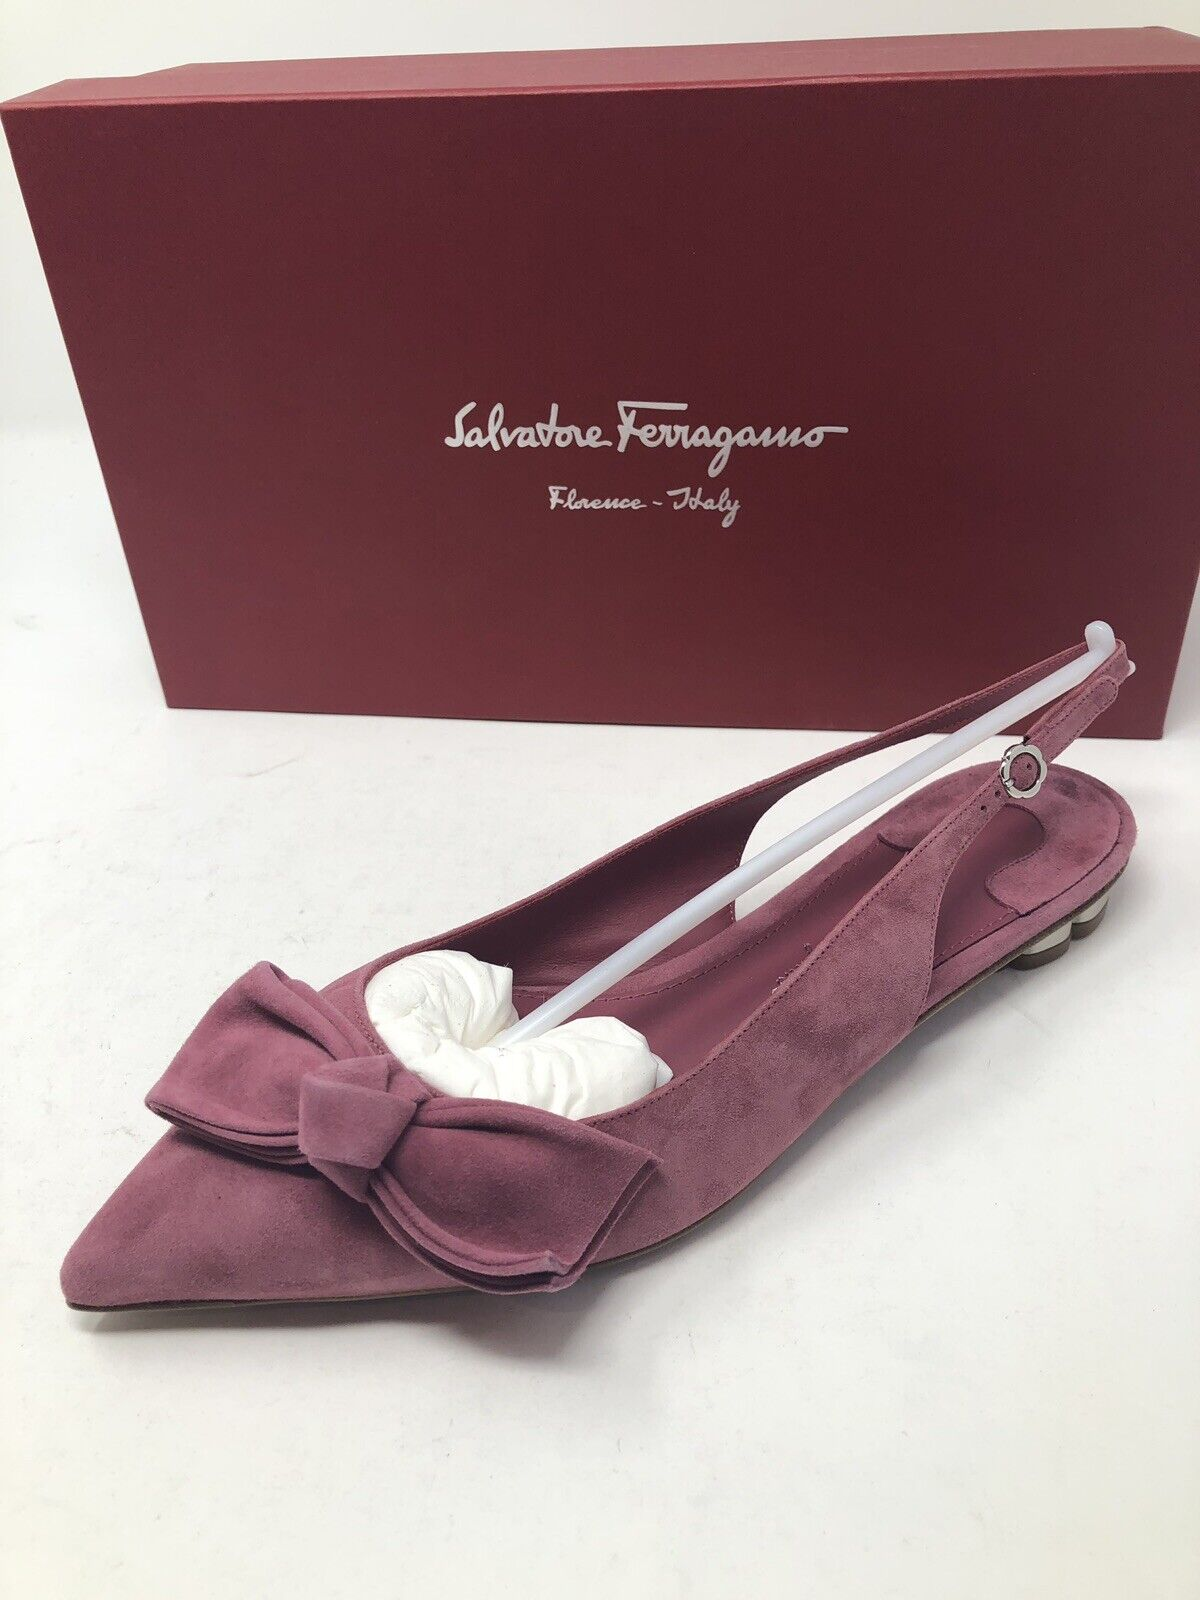 620 New Salvatore Ferragamo Womens Pink shoes Heels  Pumps Ladies Size 7 37